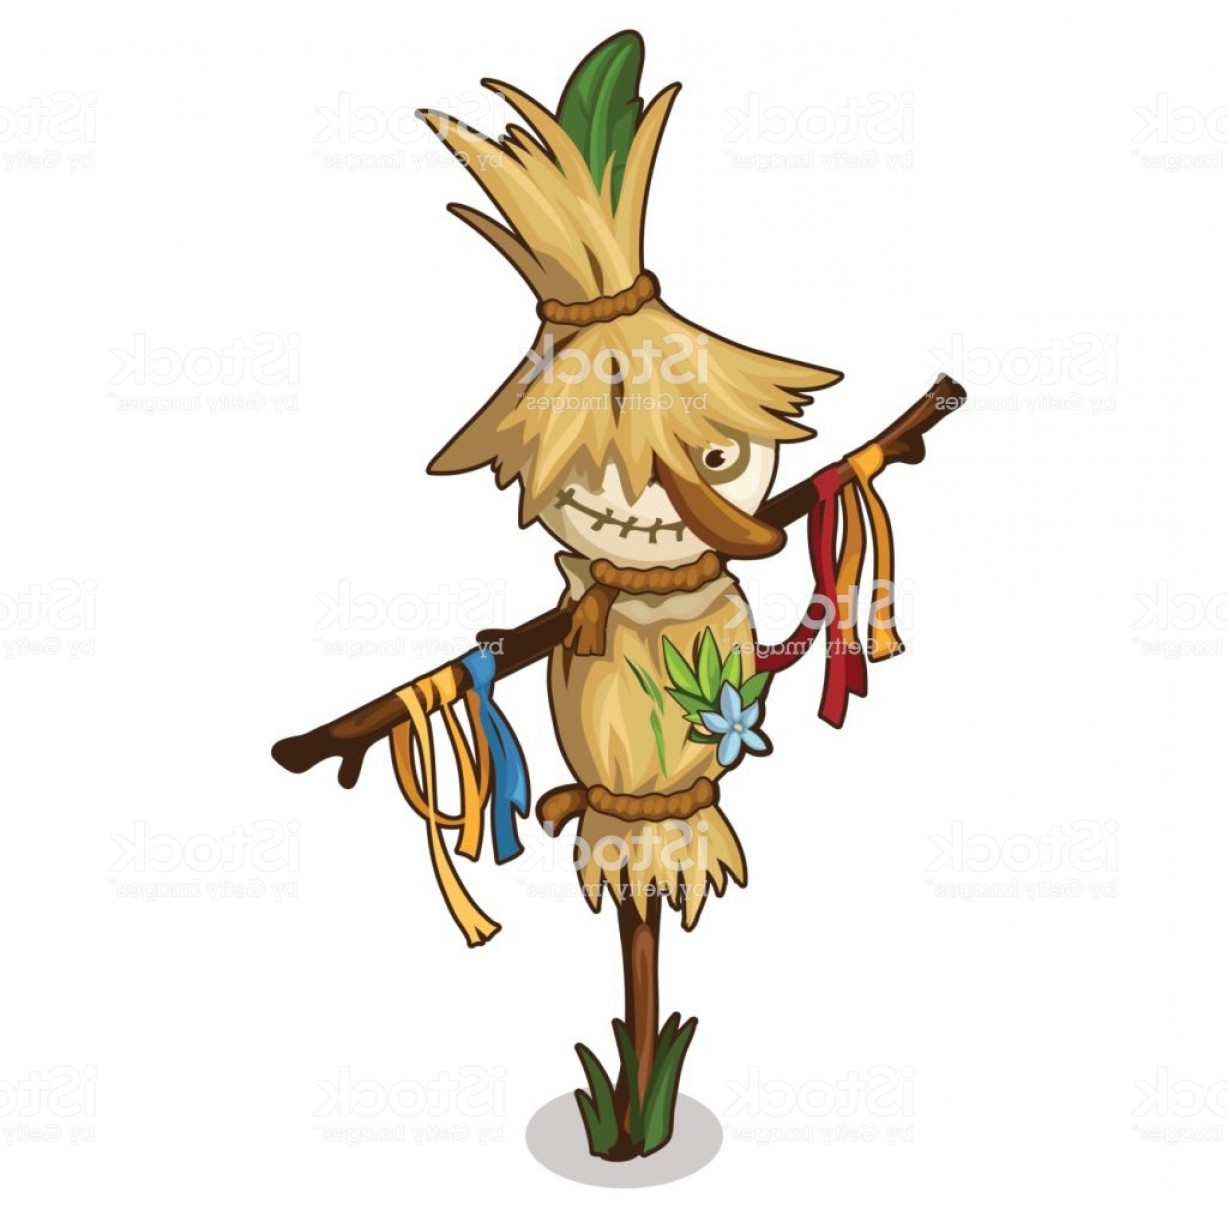 Scarecrow Vector Art: Funny Scarecrow In A Straw Hat In Cartoon Style Gm